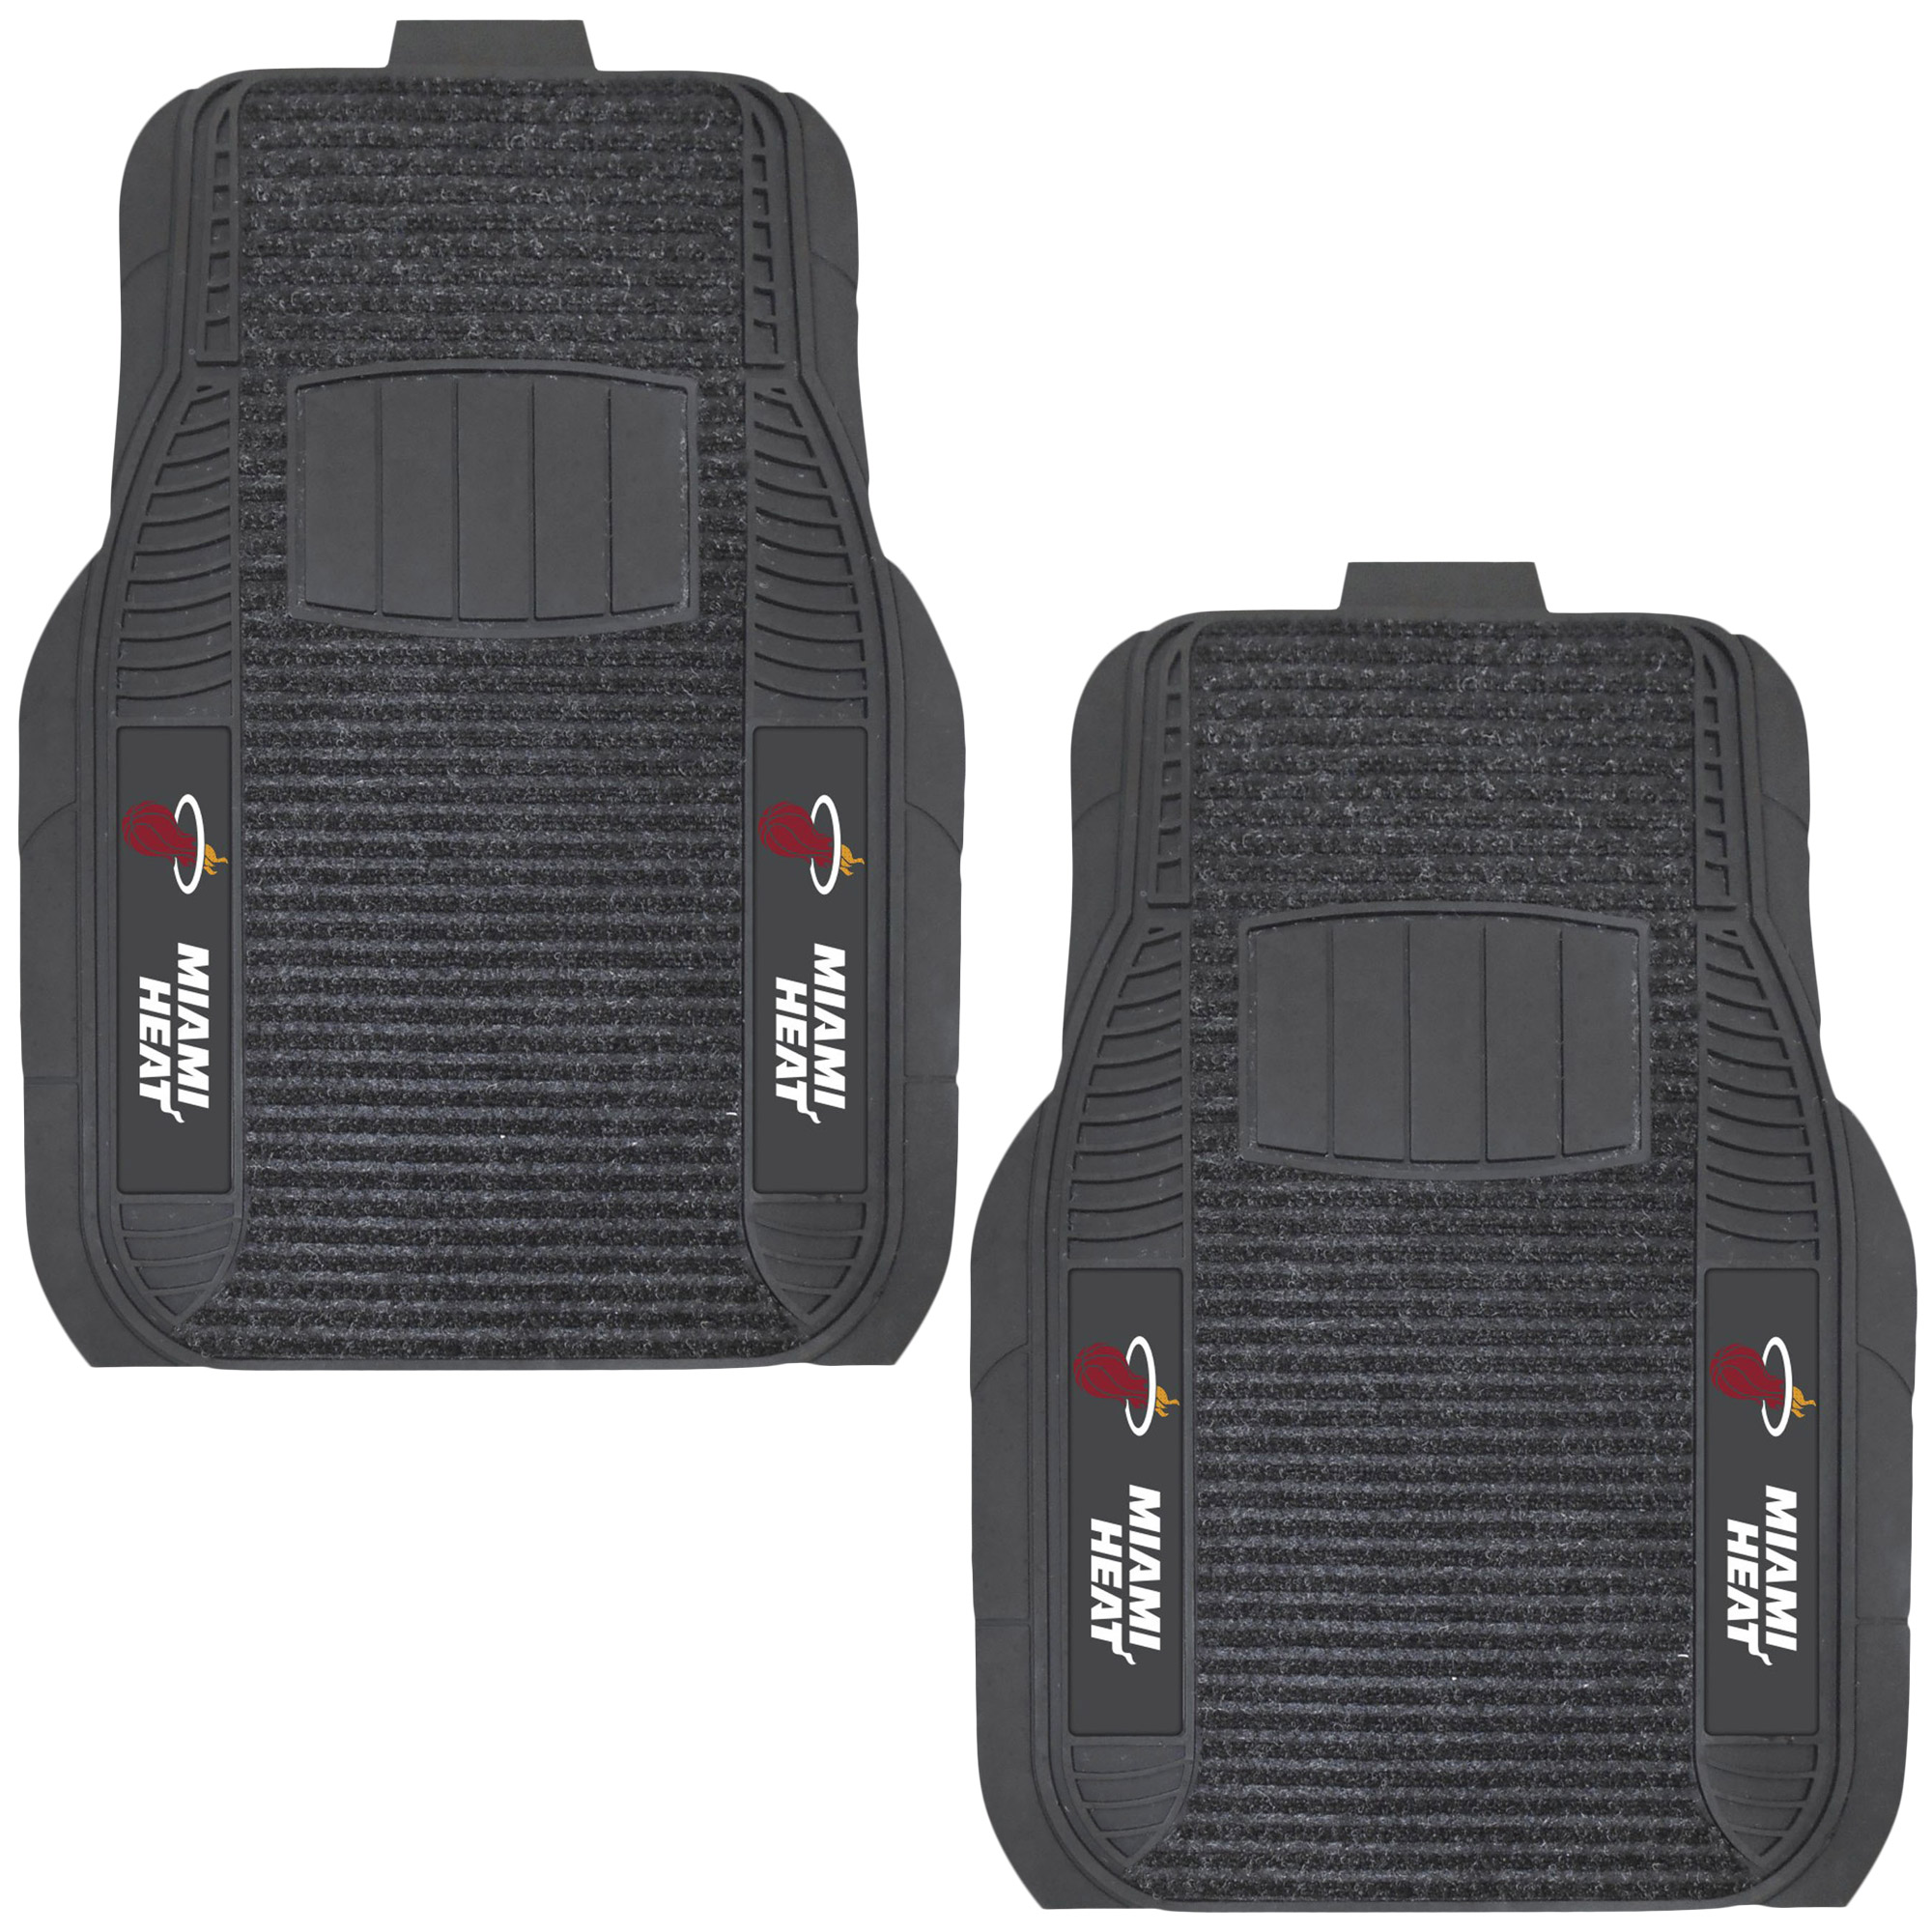 Miami Heat Two-Piece Deluxe Car Mat Set - No Size